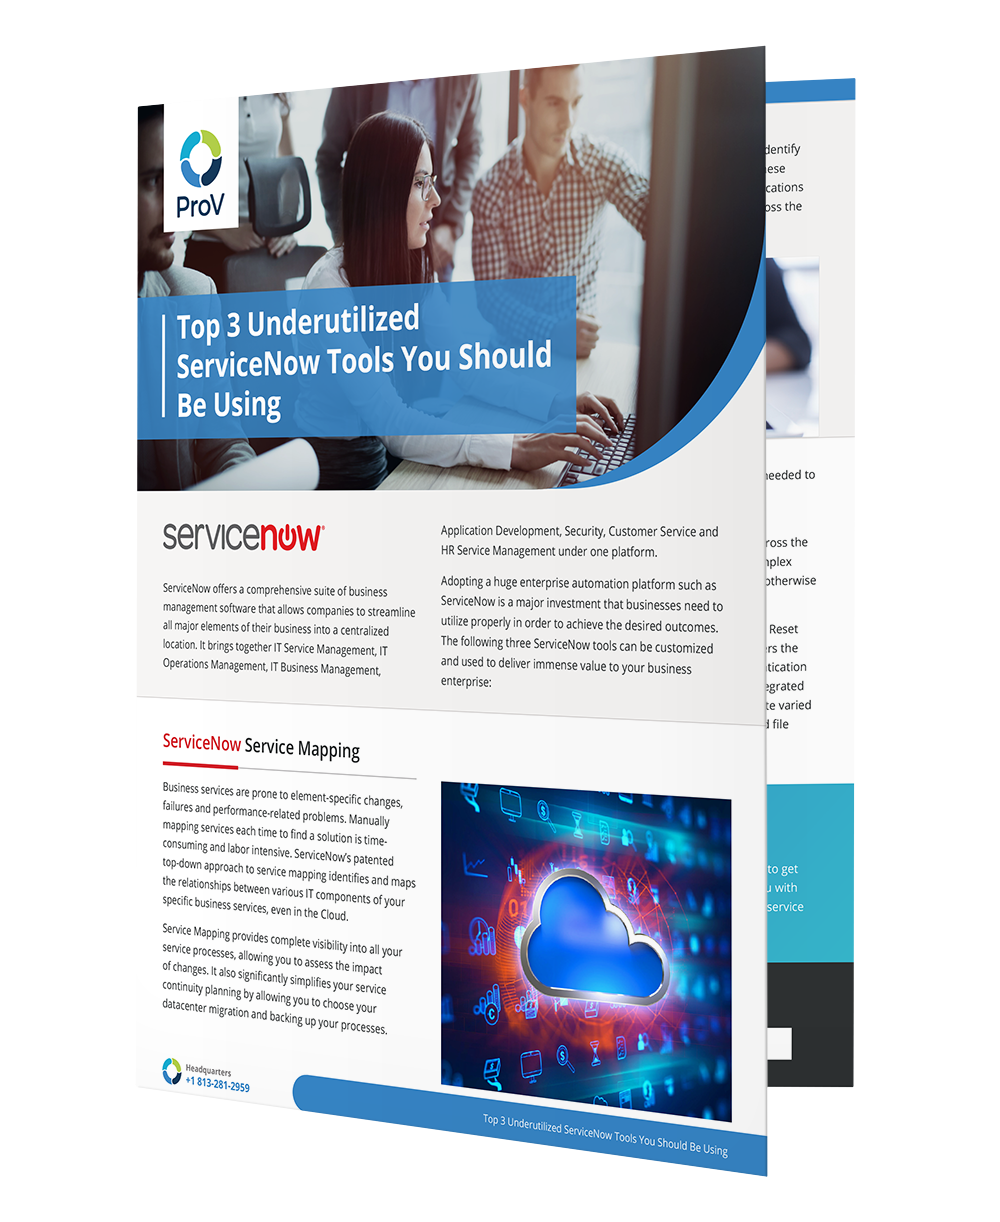 top-three-underutilized-servicenow-tools-you-should-be-using